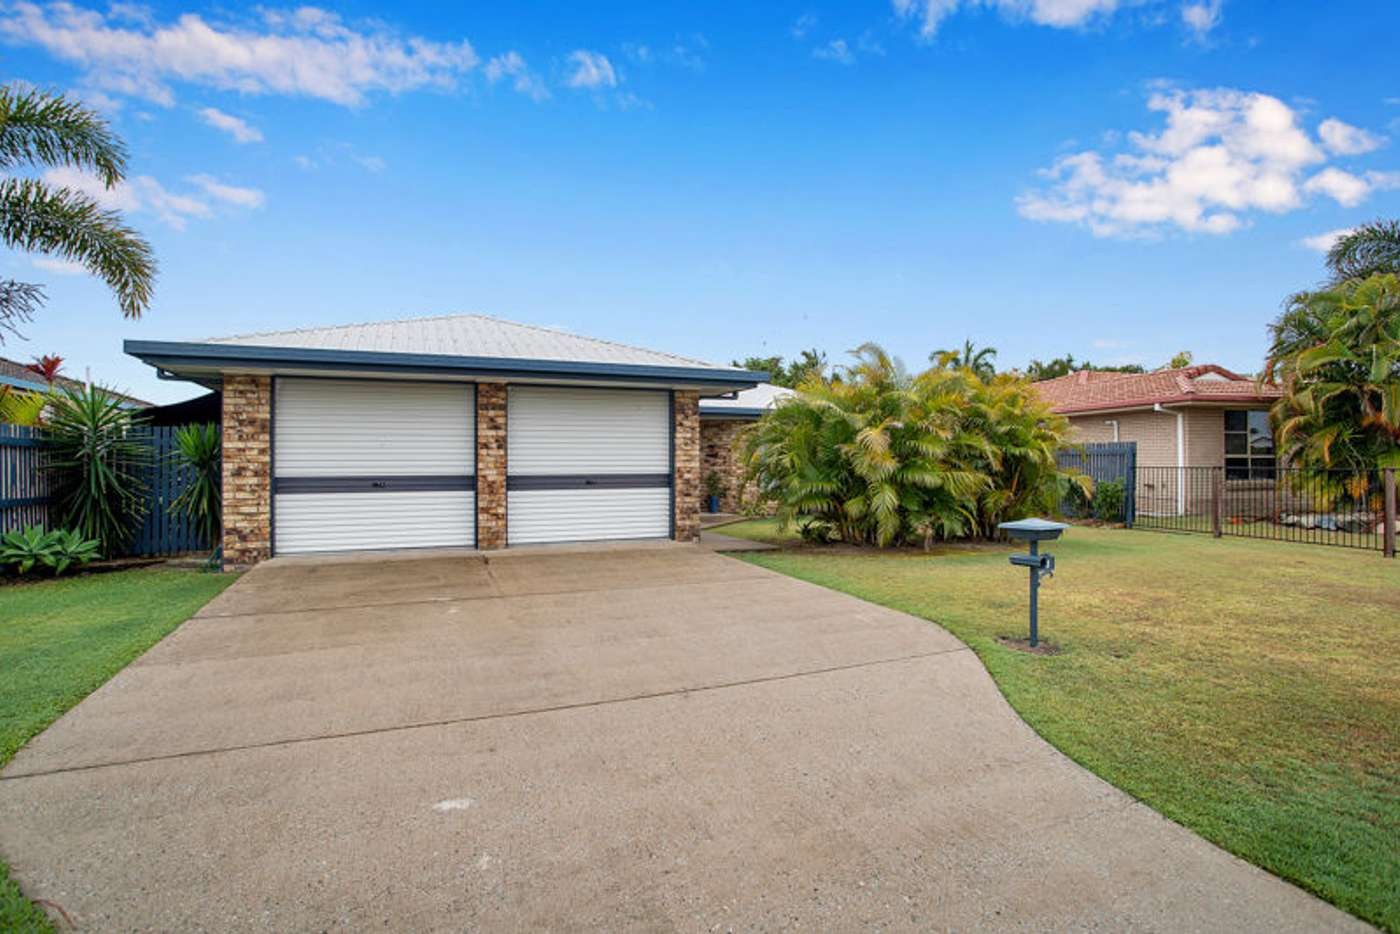 Main view of Homely house listing, 73 Ben Nevis Street, Beaconsfield QLD 4740